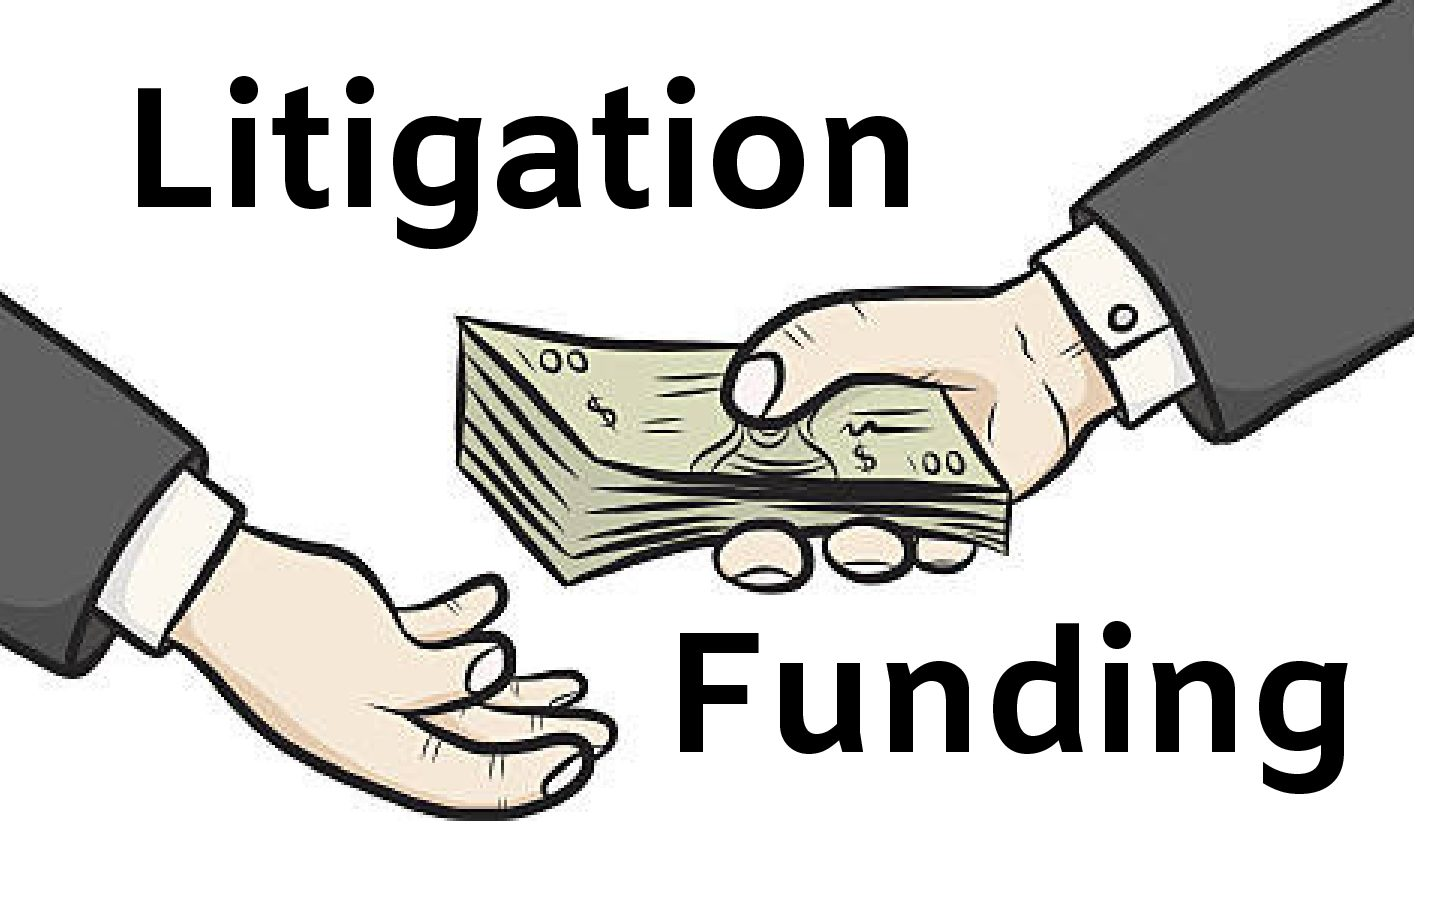 Definition: Litigation Funding